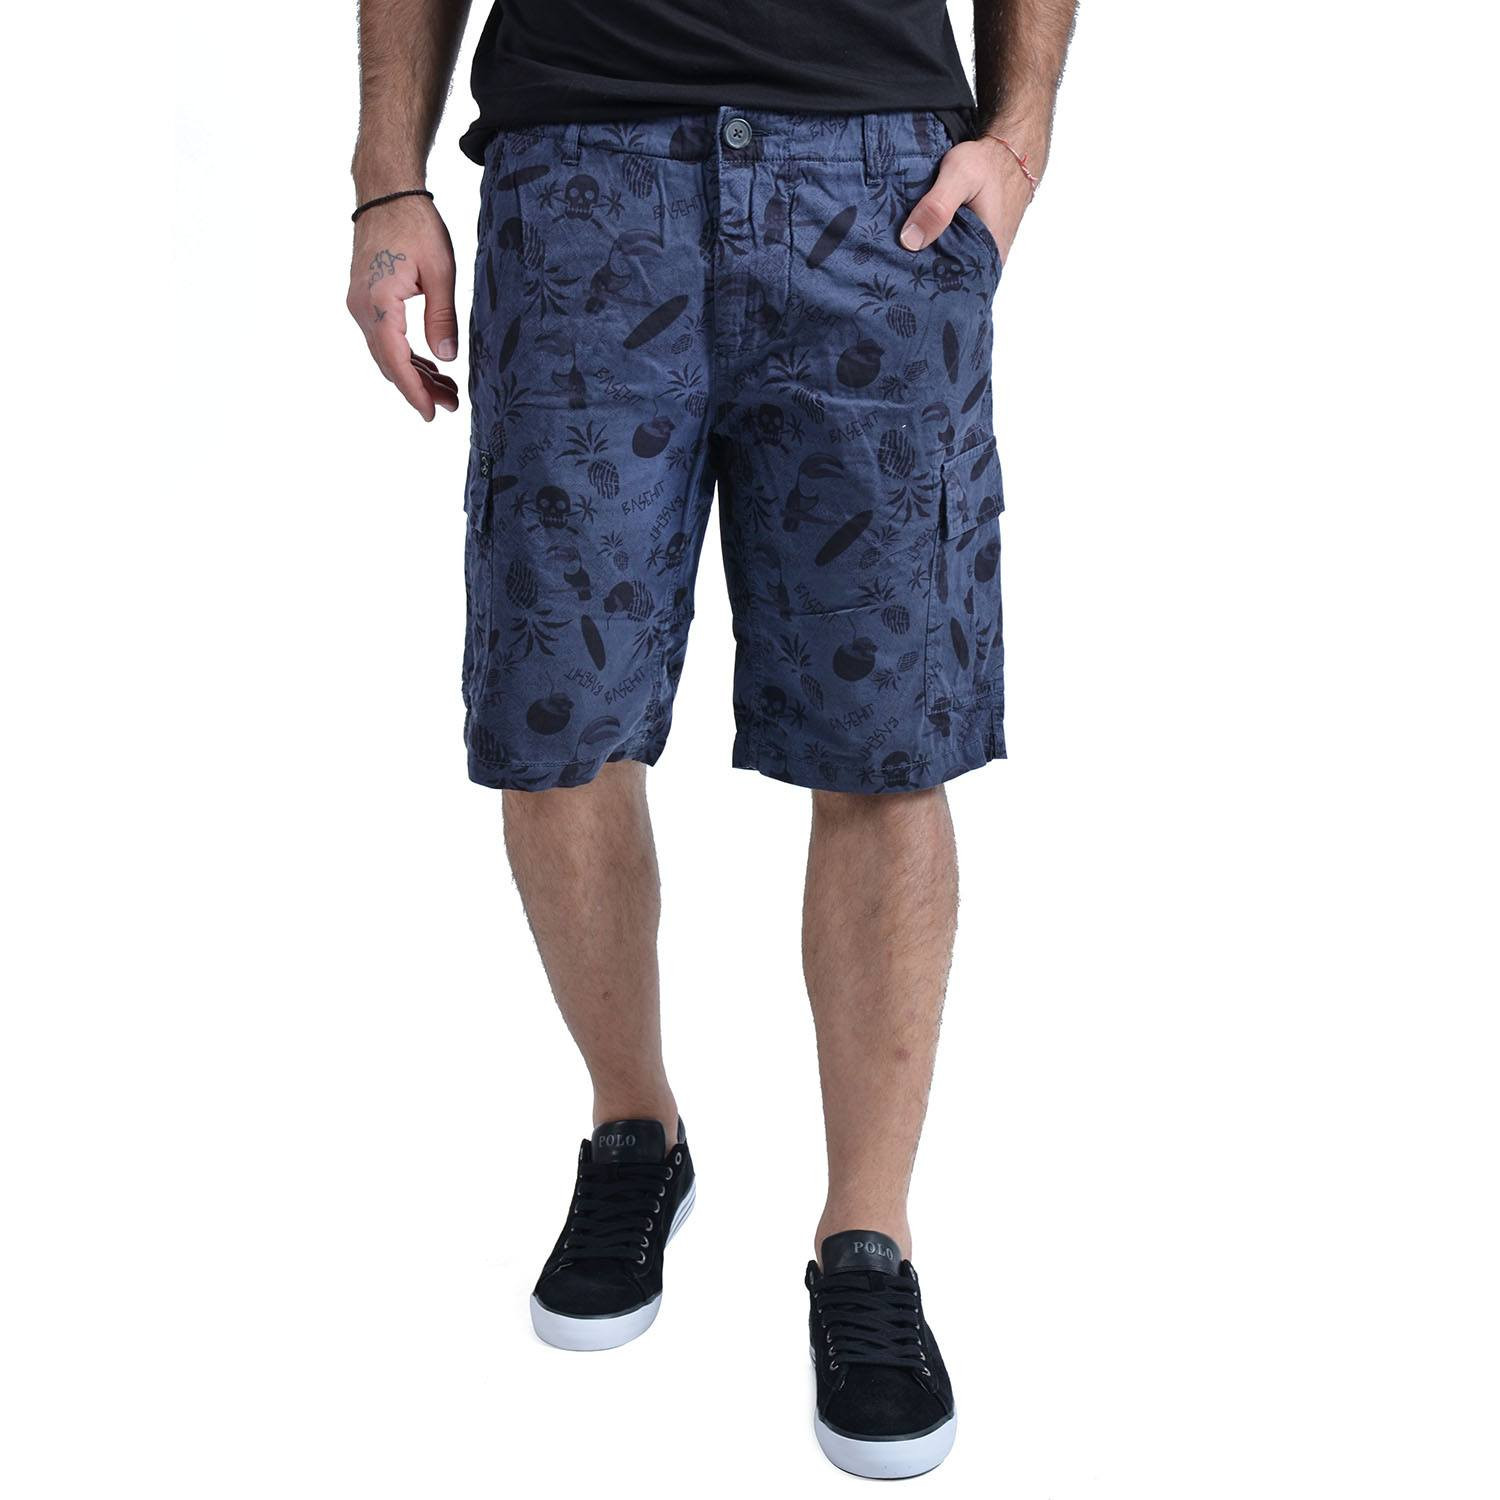 Basehit Men's printed gd cargo short pants (20819101868_27125)